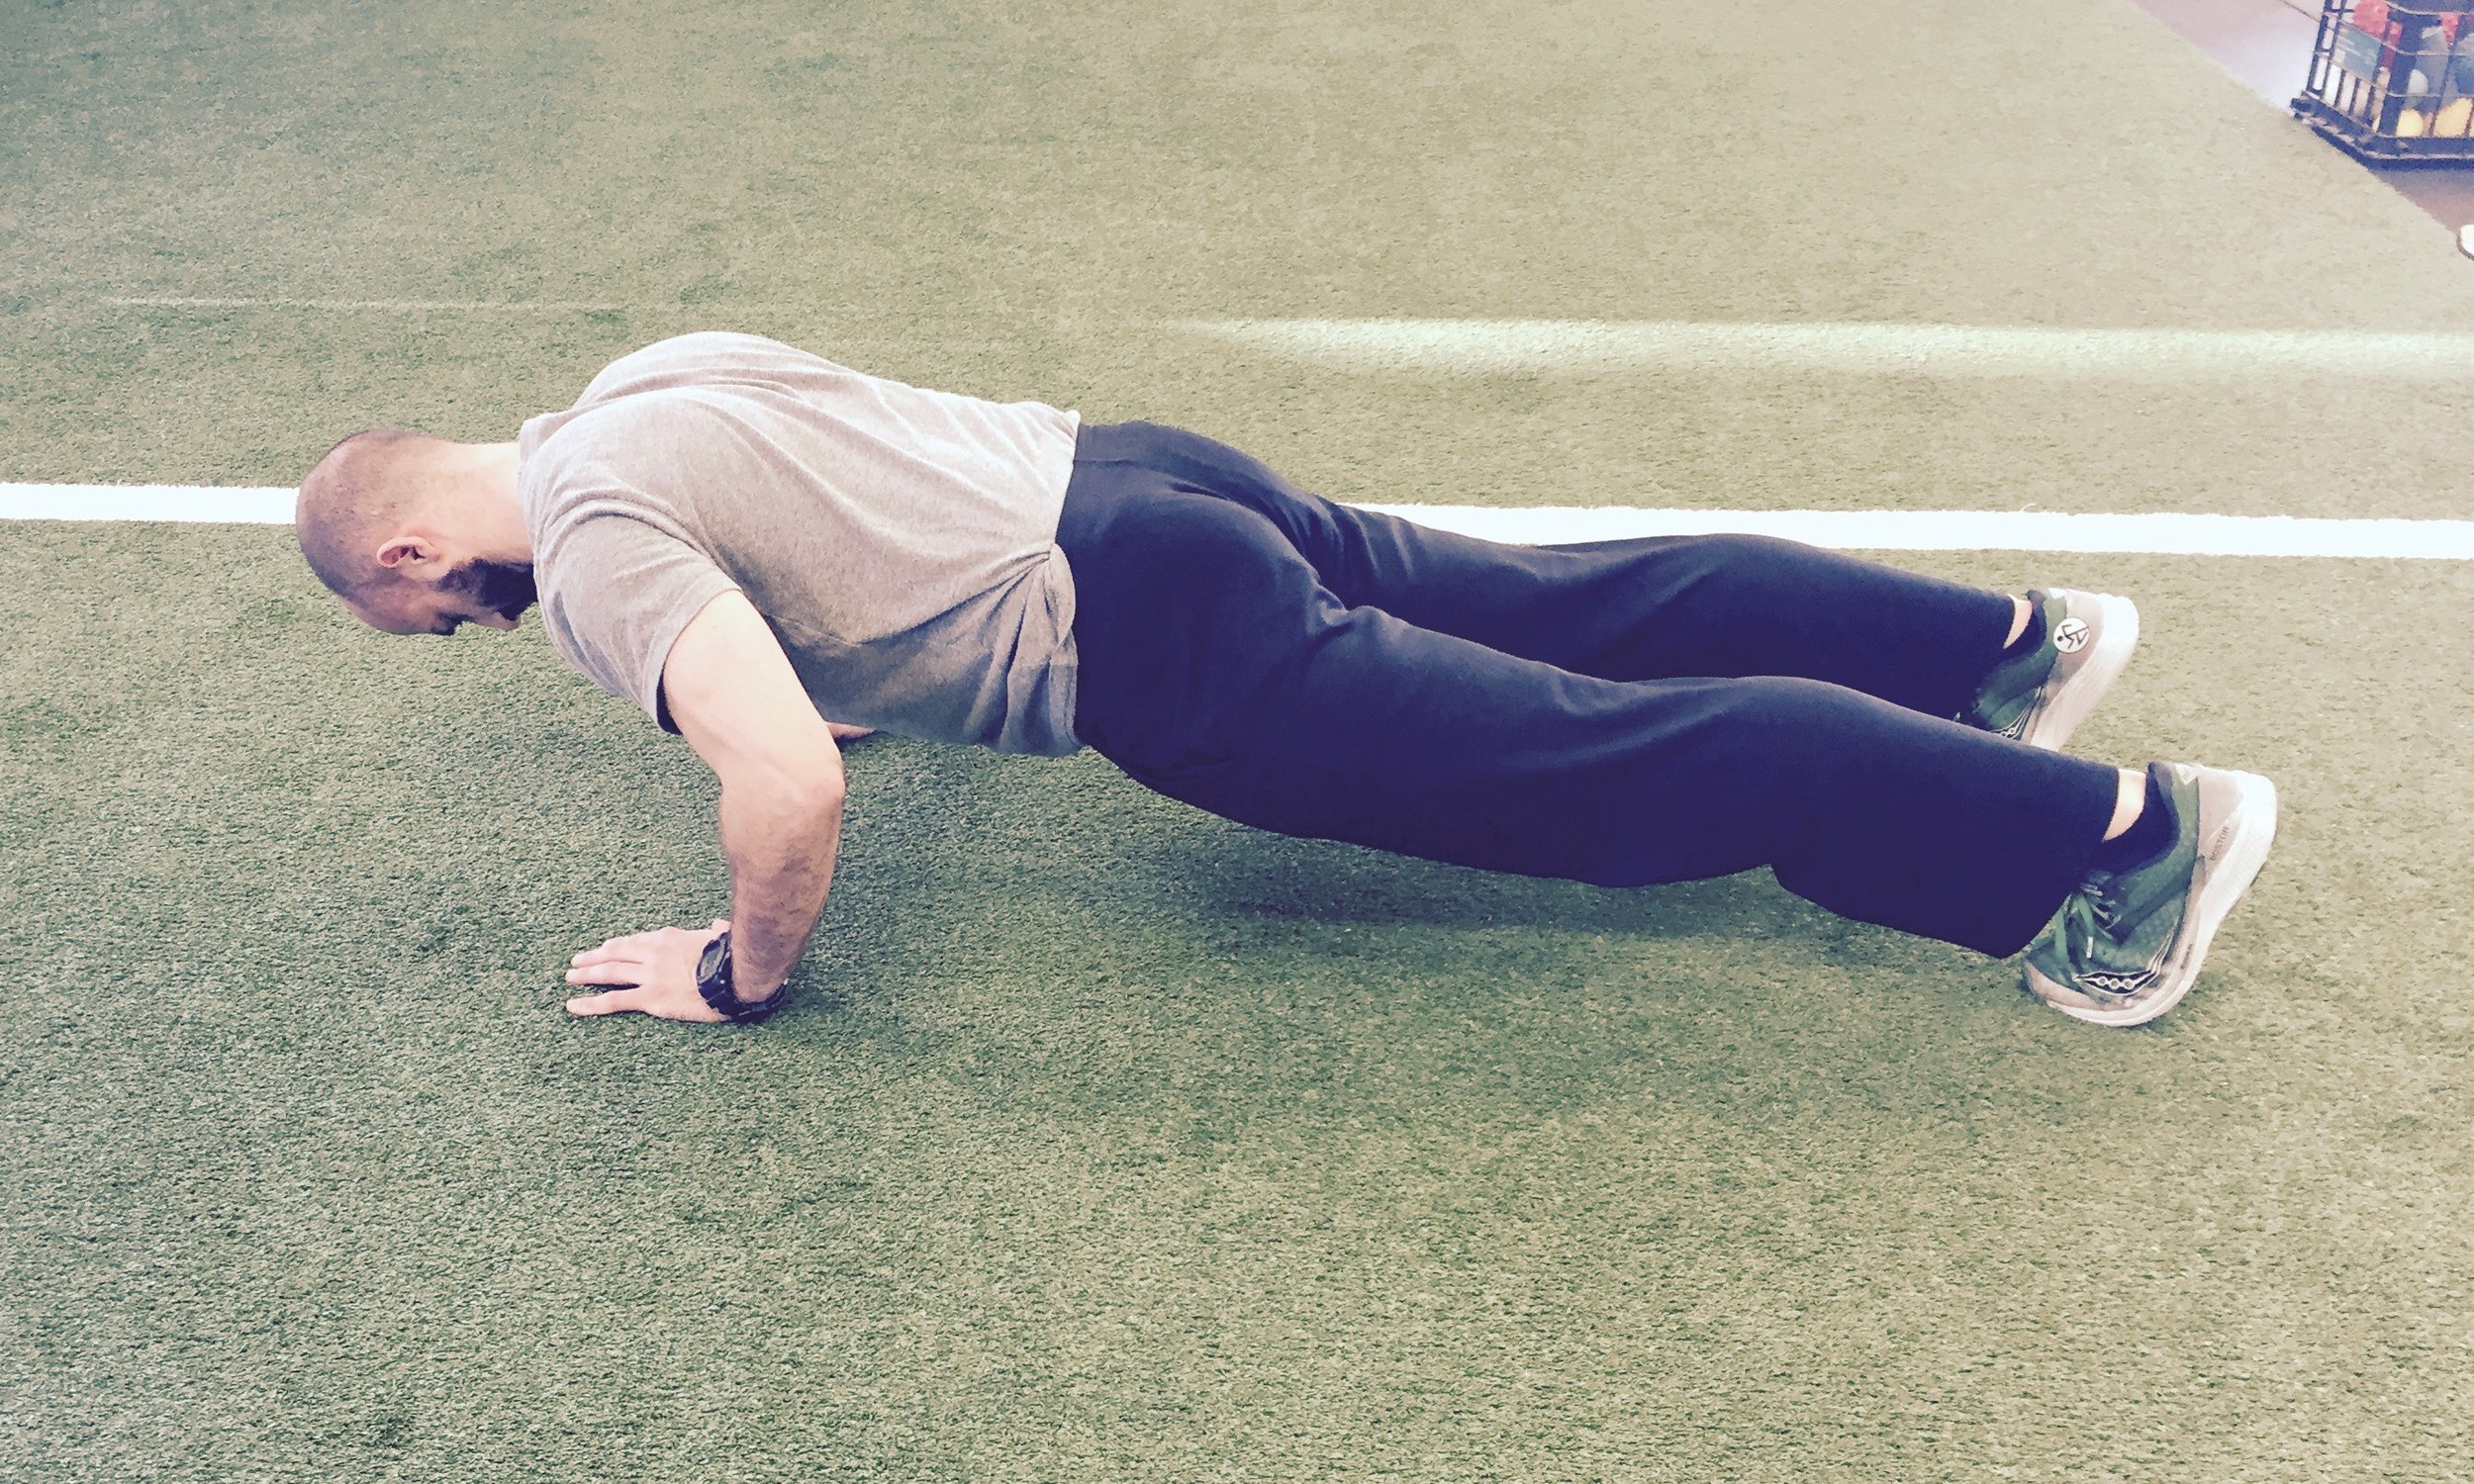 How to fix common press-up mistakes